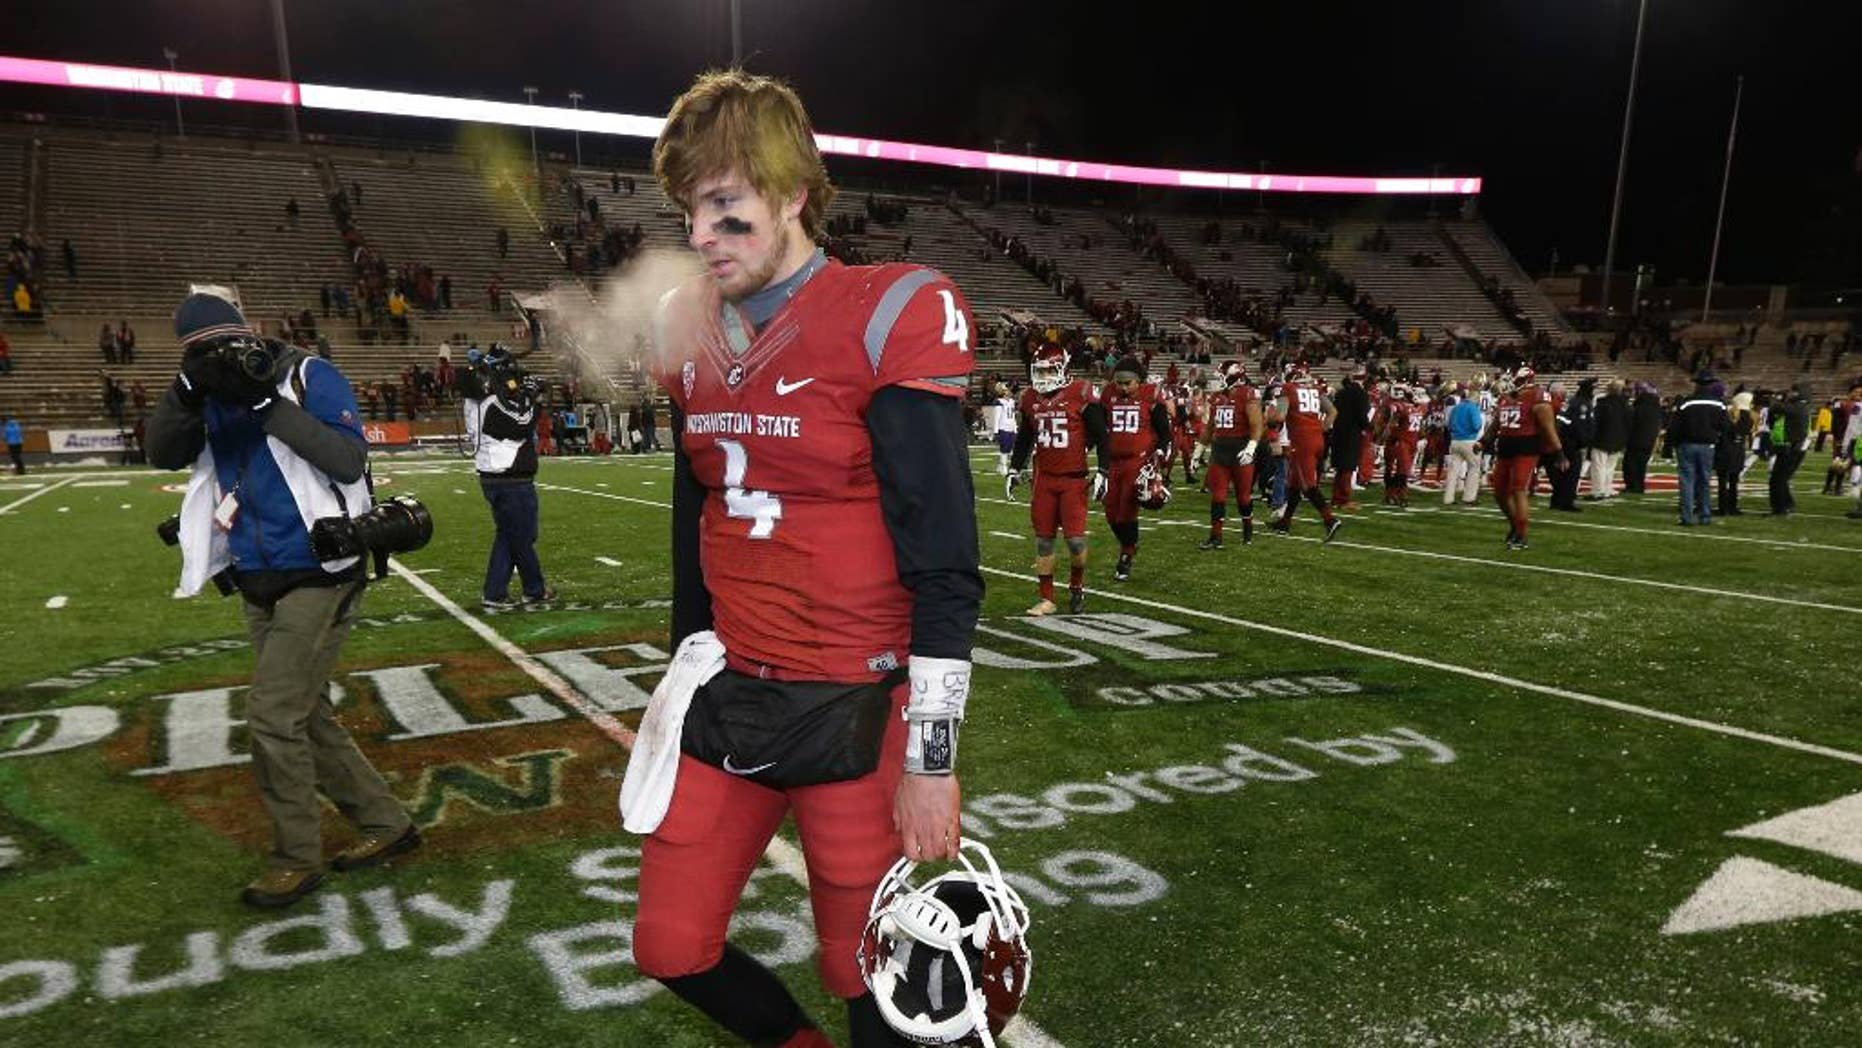 Washington State quarterback Luke Falk walks off the field, Saturday, Nov. 29, 2014, in Pullman, Wash., after Washington defeated Washington State 31-13 in an NCAA college football game. (AP Photo/Ted S. Warren)